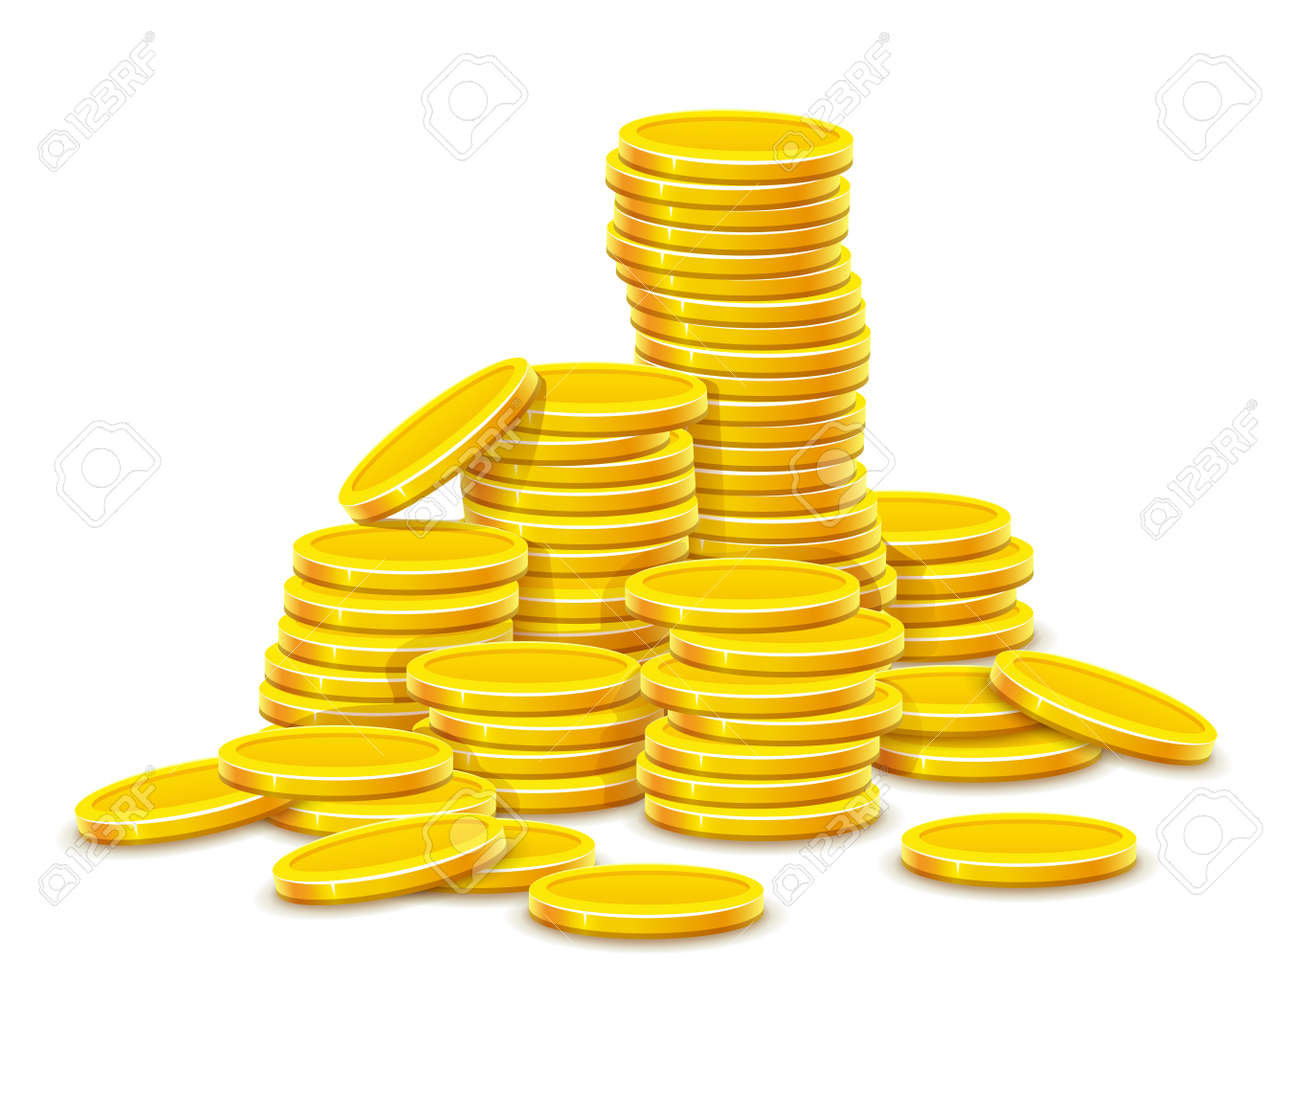 Gold coins cash money in rouleau. Isolated on white background Stock Vector - 43151267